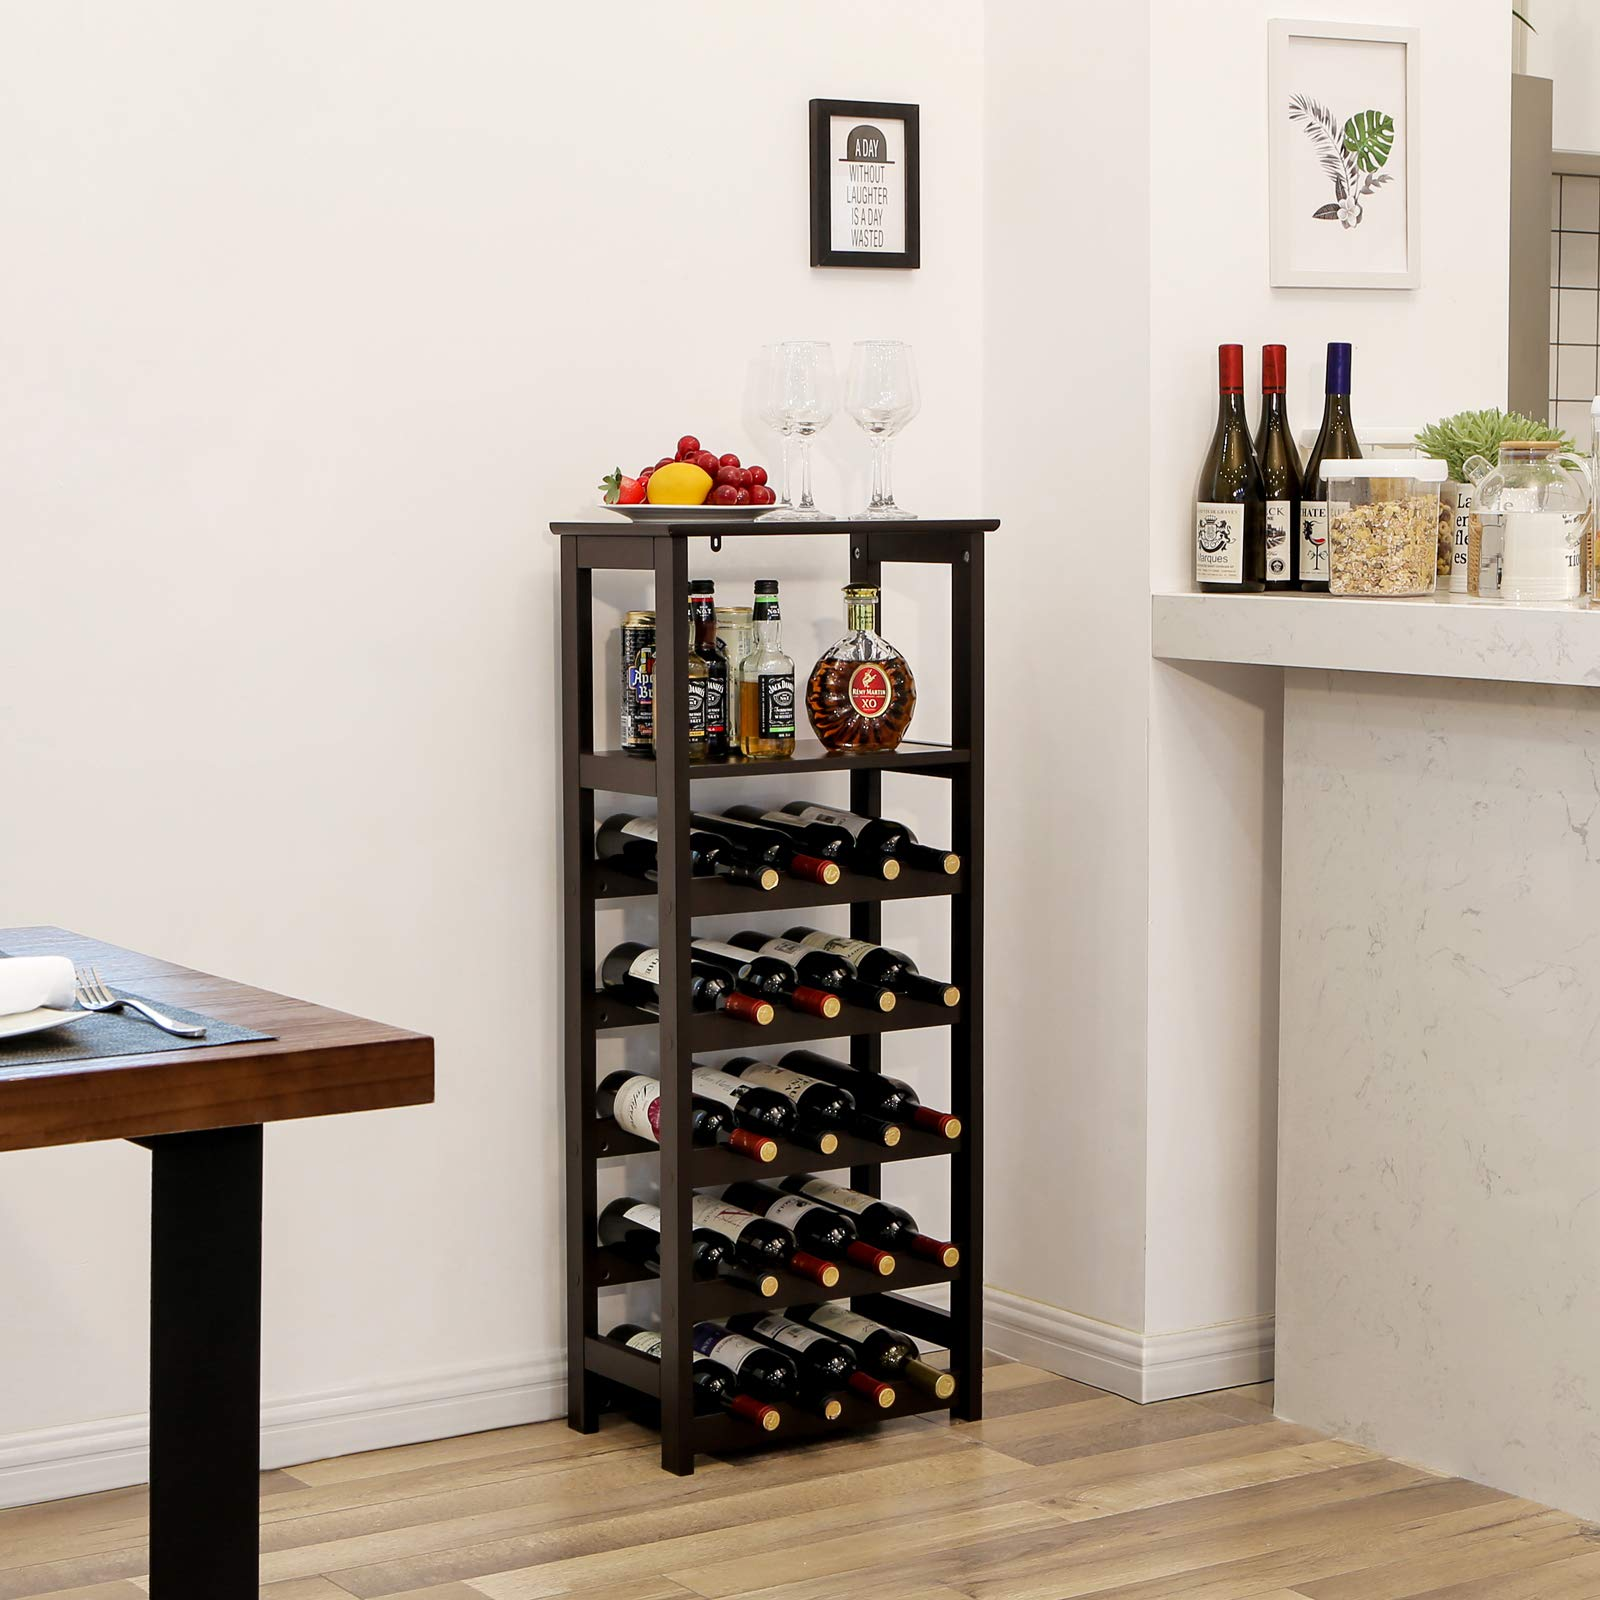 VASAGLE 20 Wooden Wine Rack, Free Standing Bottles Display Storage Shelf, with 2 Slatted Shelves,18.4''L × 10.4''W × 42.9''H, Espresso ULWR03BR by VASAGLE (Image #3)